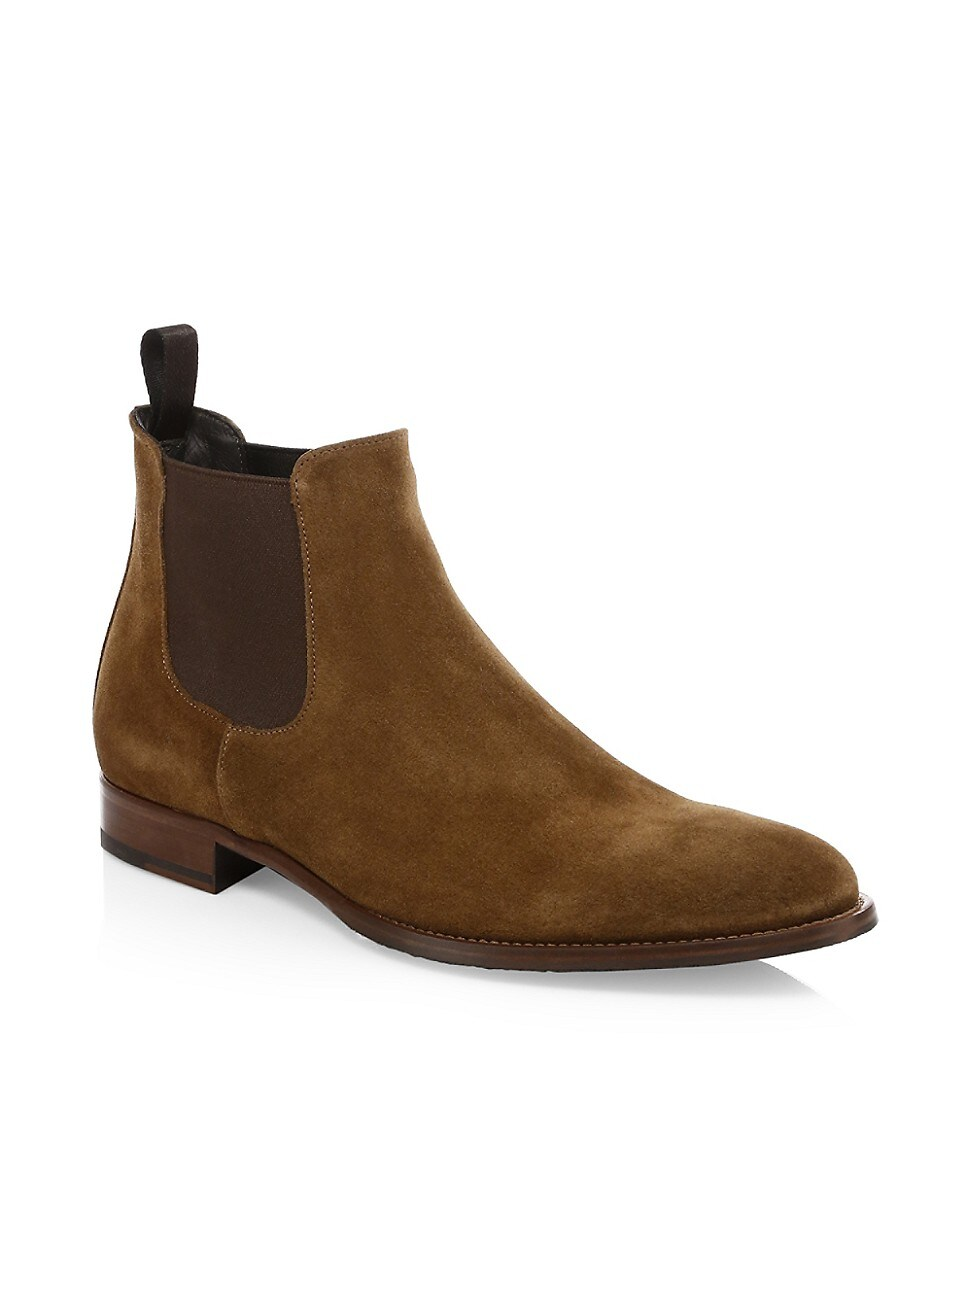 To Boot New York Suedes MEN'S SHELBY SUEDE CHELSEA BOOTS